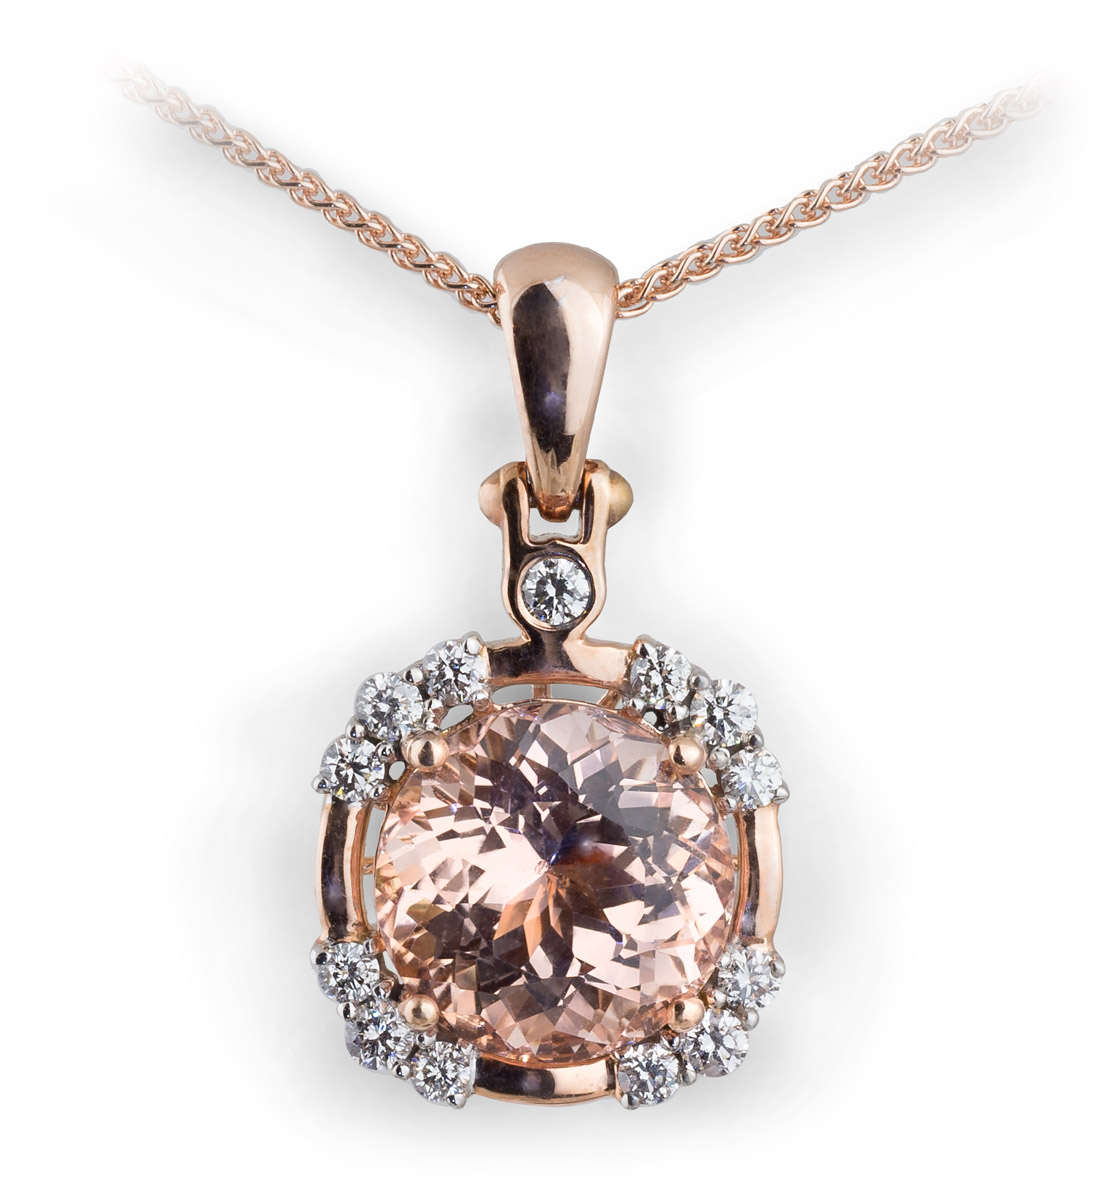 w created t white in image opal crazy topaz ct pendant vian morganite peach for shop necklace main neapolitan gold product fpx le rose macys collection